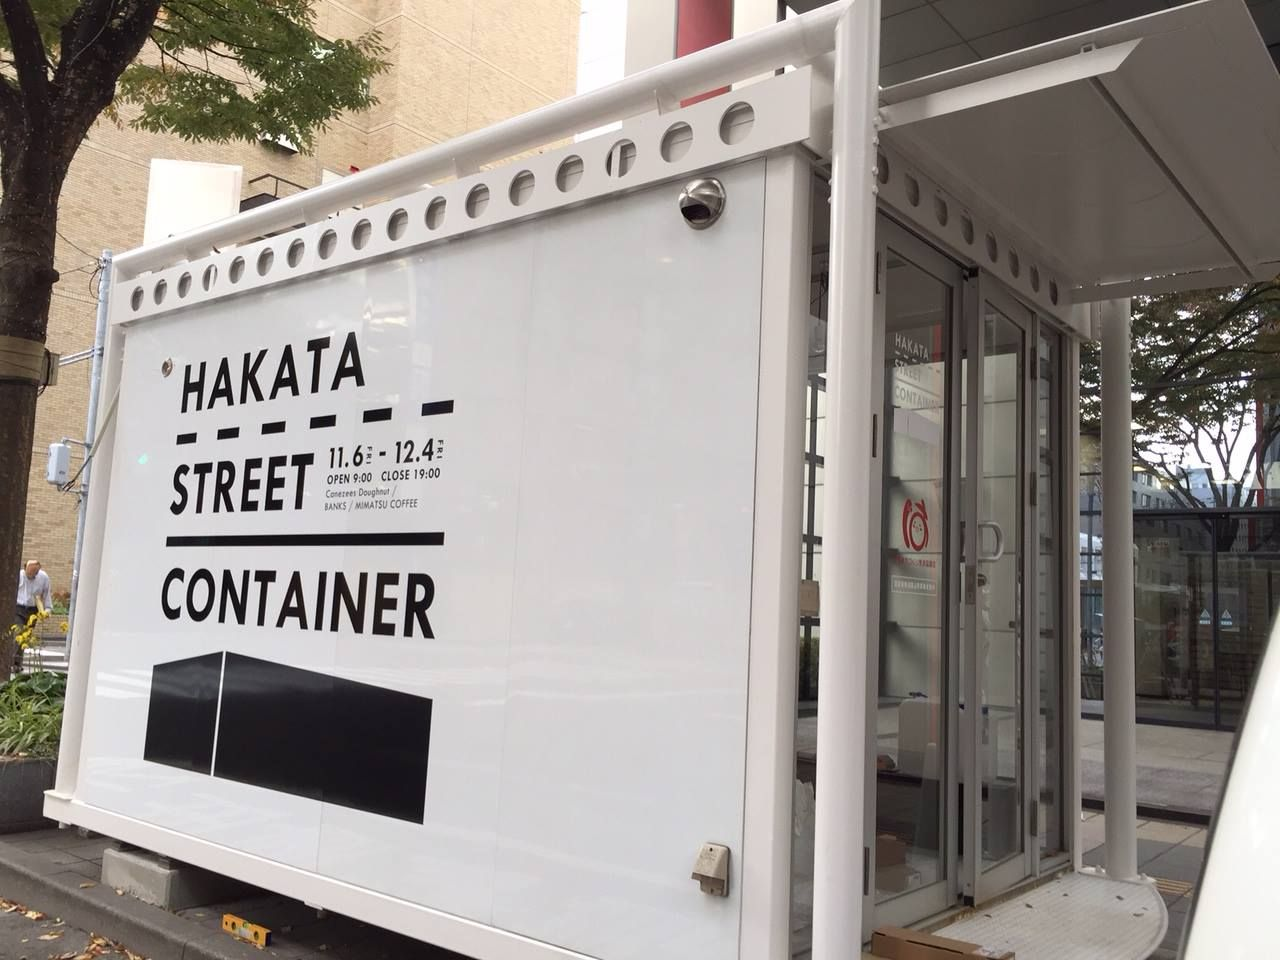 L Box Event Store Container コンテナハウス カフェ プレハブの家 コンテナハウス